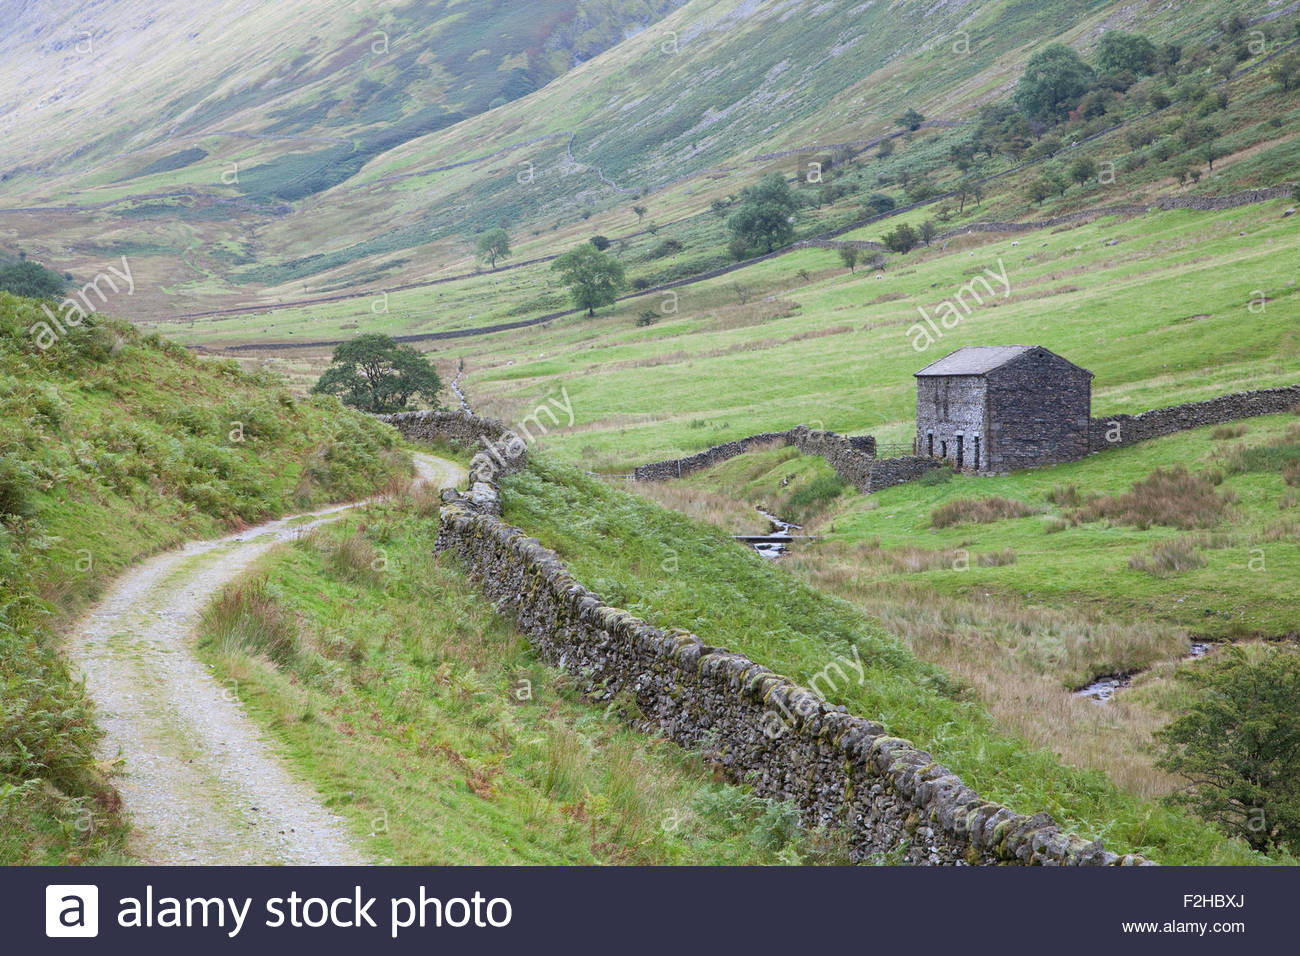 Hag Gill Valley near Troutbeck - Stock Image